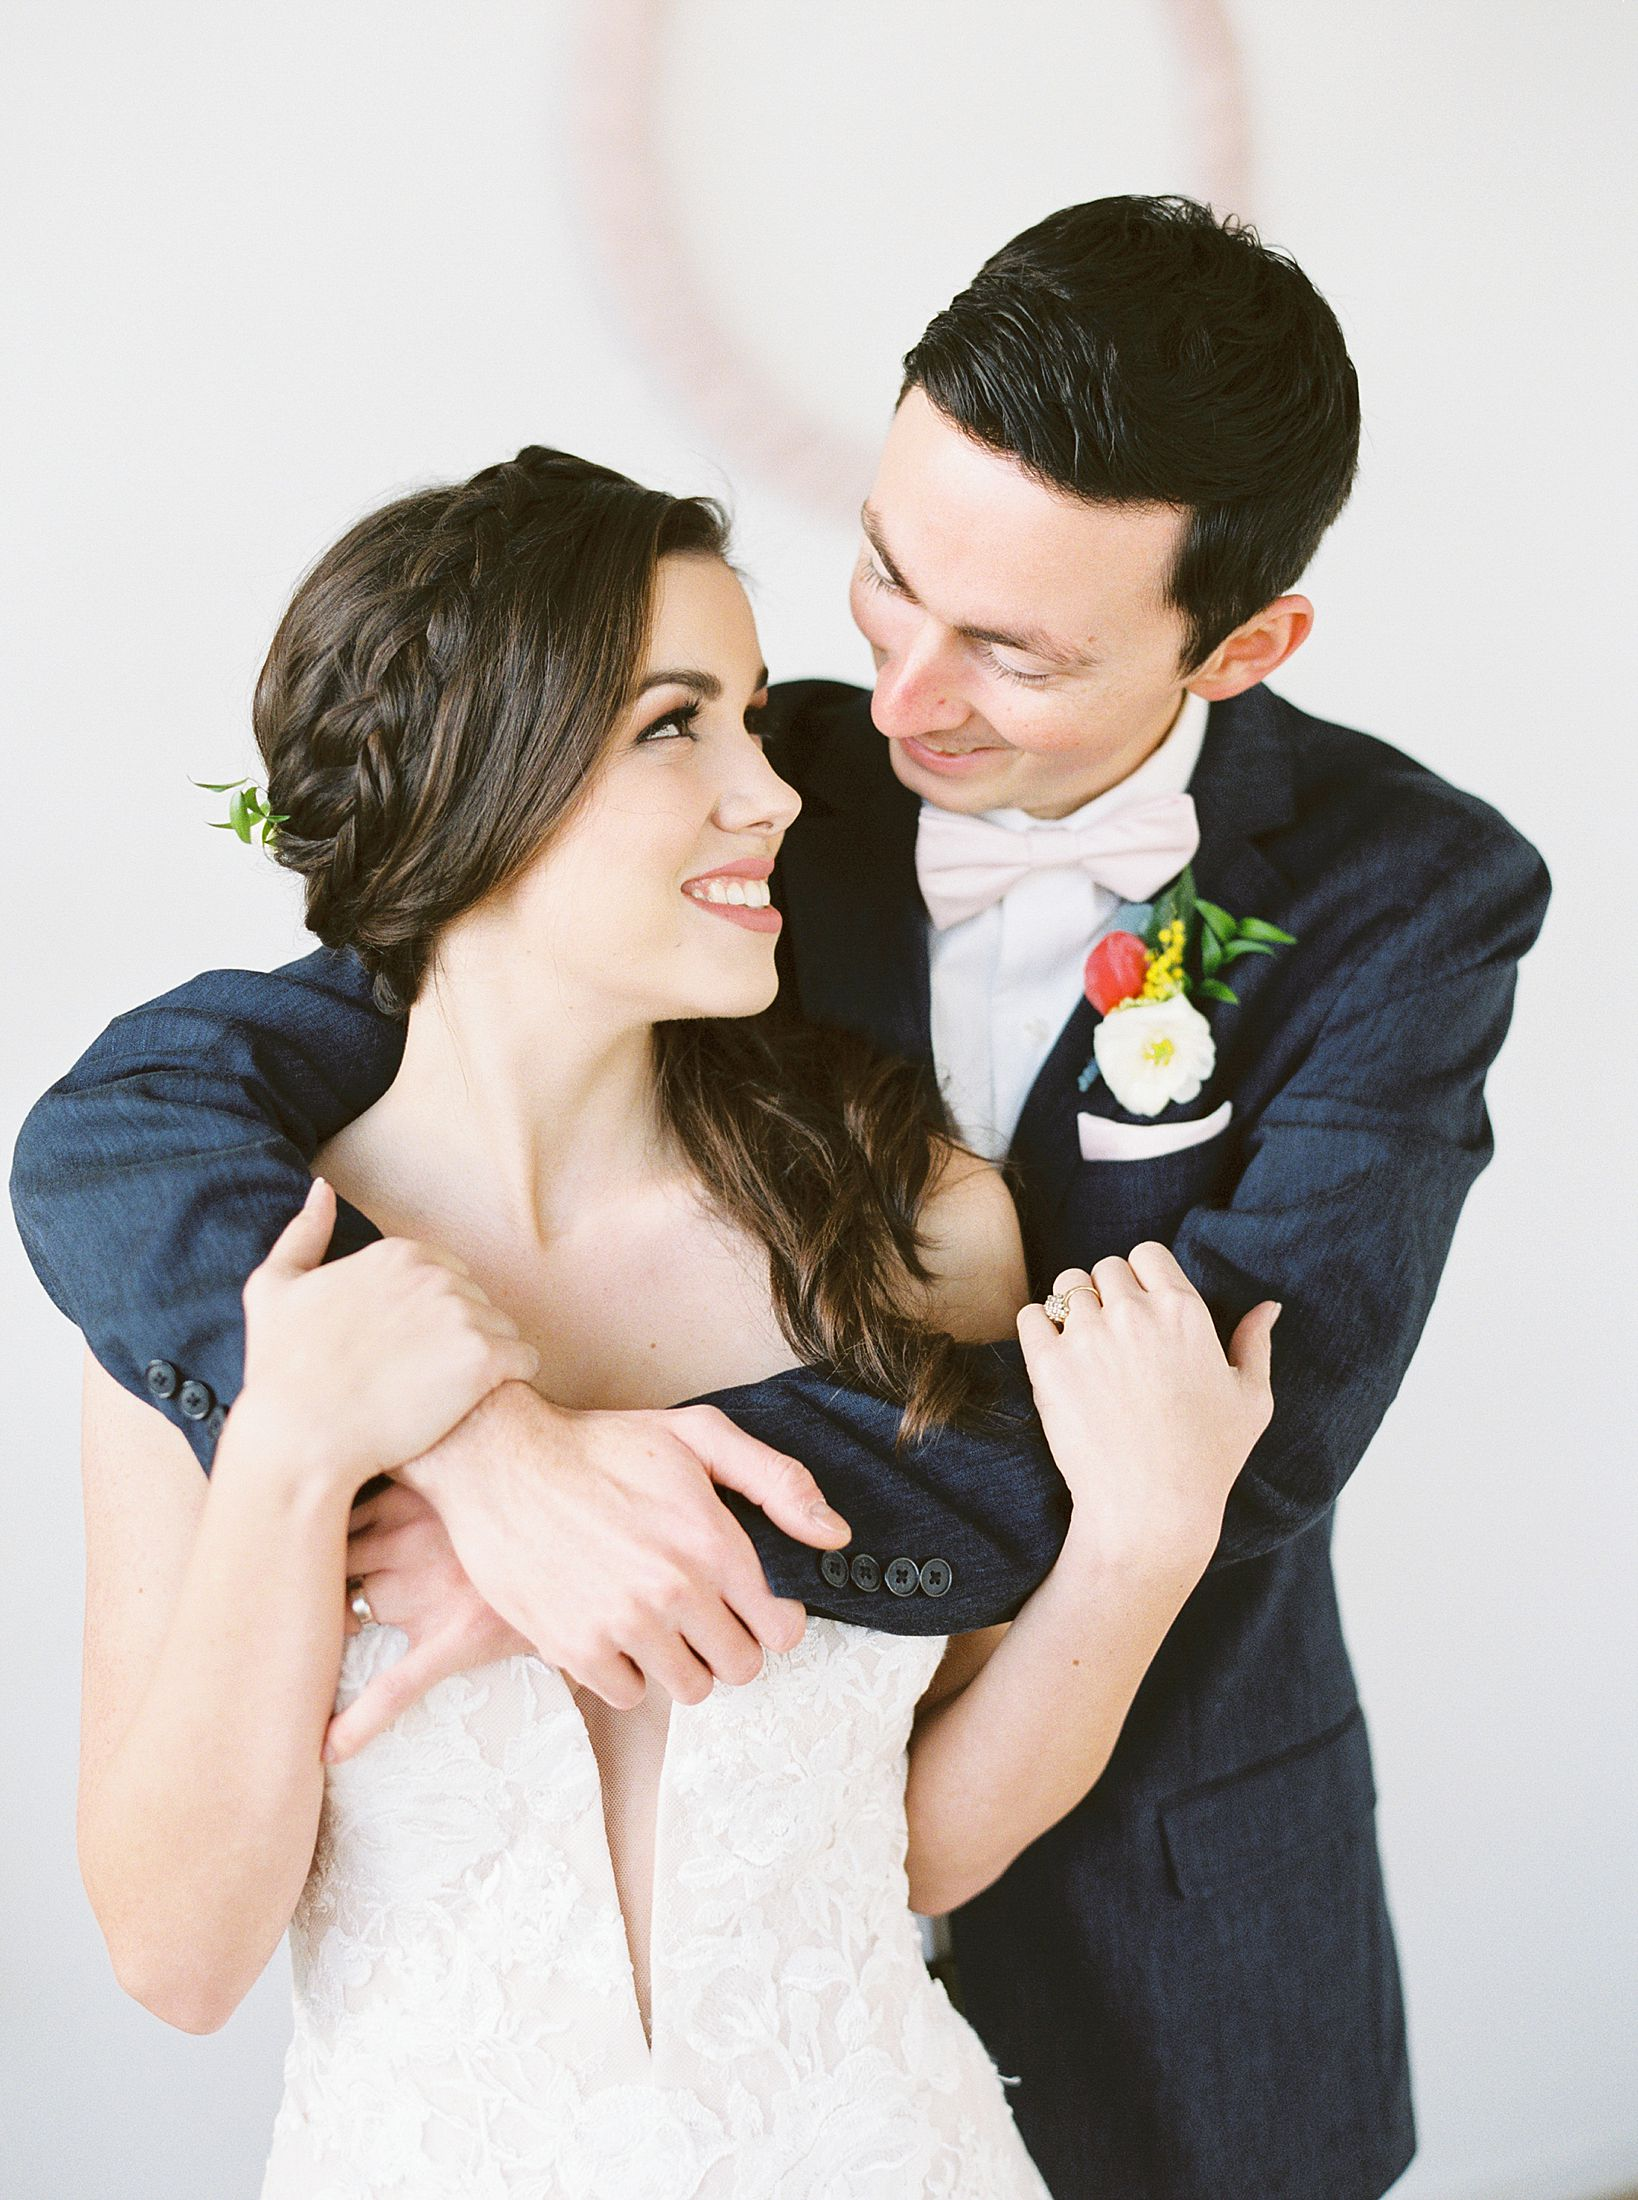 Bay Area Spring Wedding Inspiration - Ashley Baumgartner - Inspired By This - Party Crush Studio and Lens of Lenox Videography - Bay Area Wedding Photography_0009.jpg